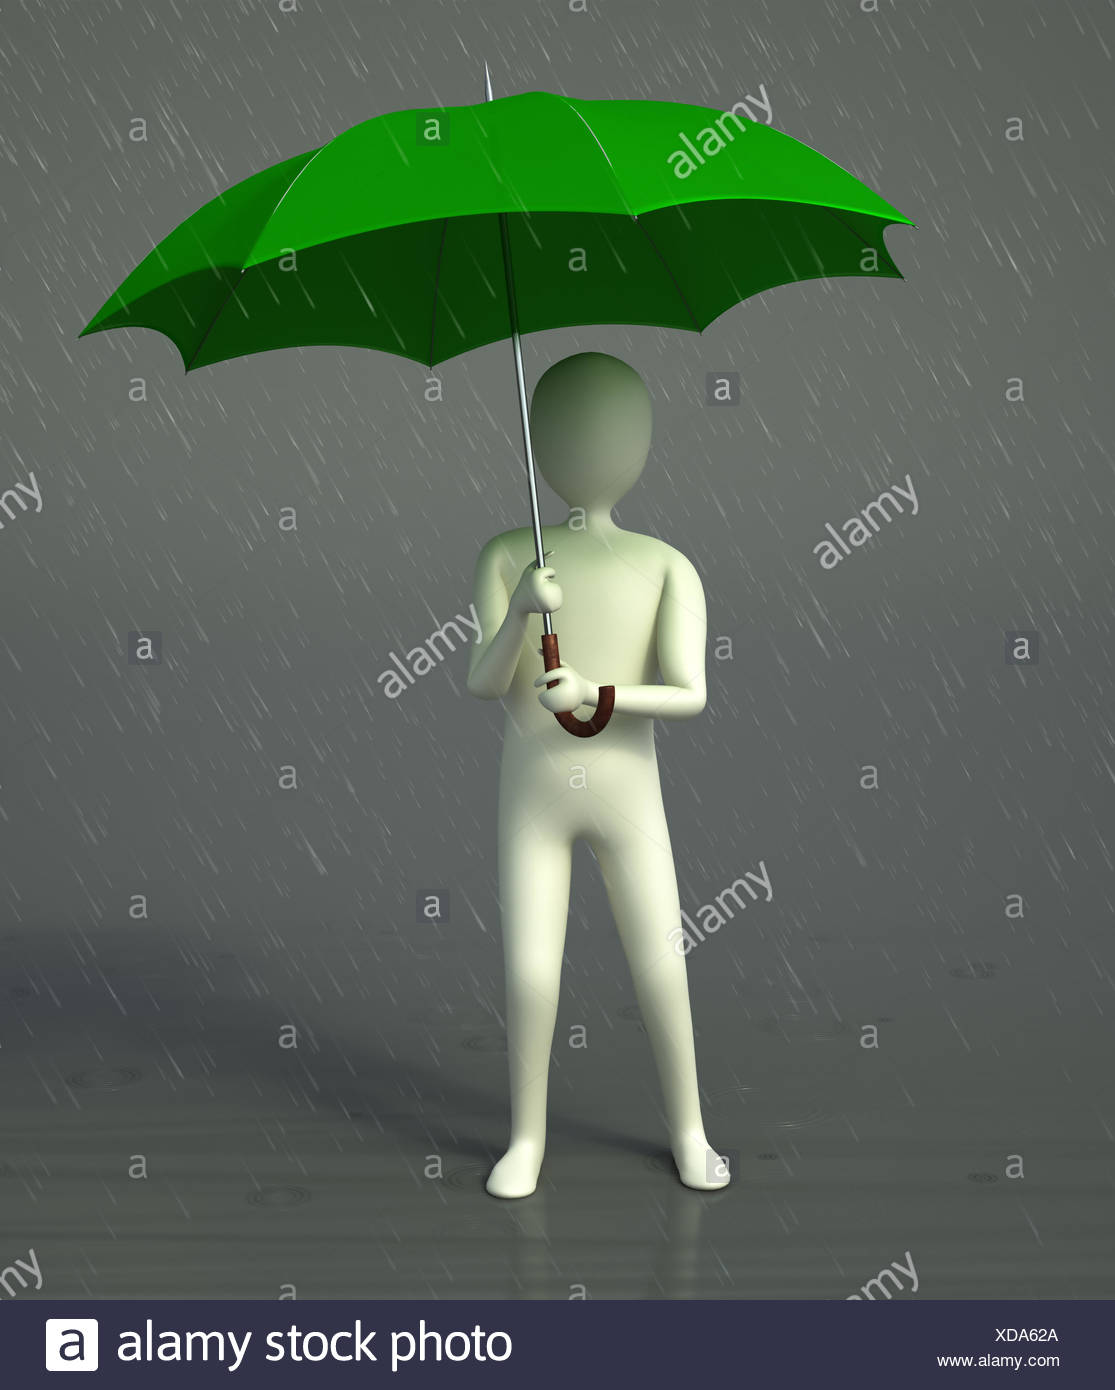 CG character holding an umbrella standing in a rain - Stock Image